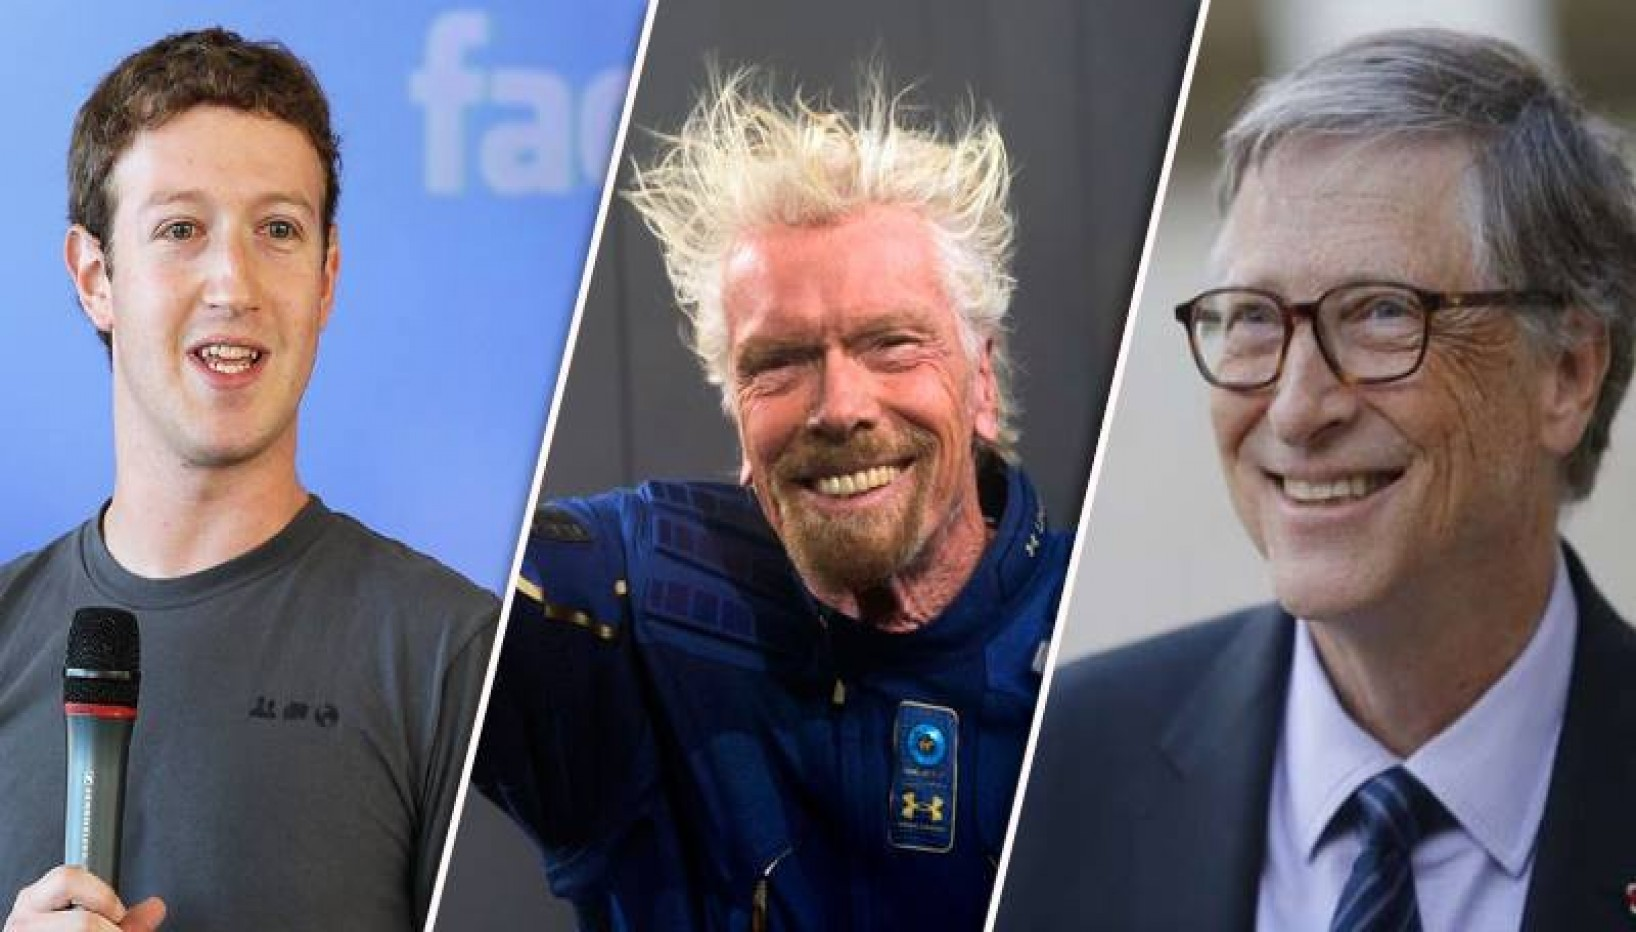 Can You Guess How Old These Founders Were When They Founded Their Company?